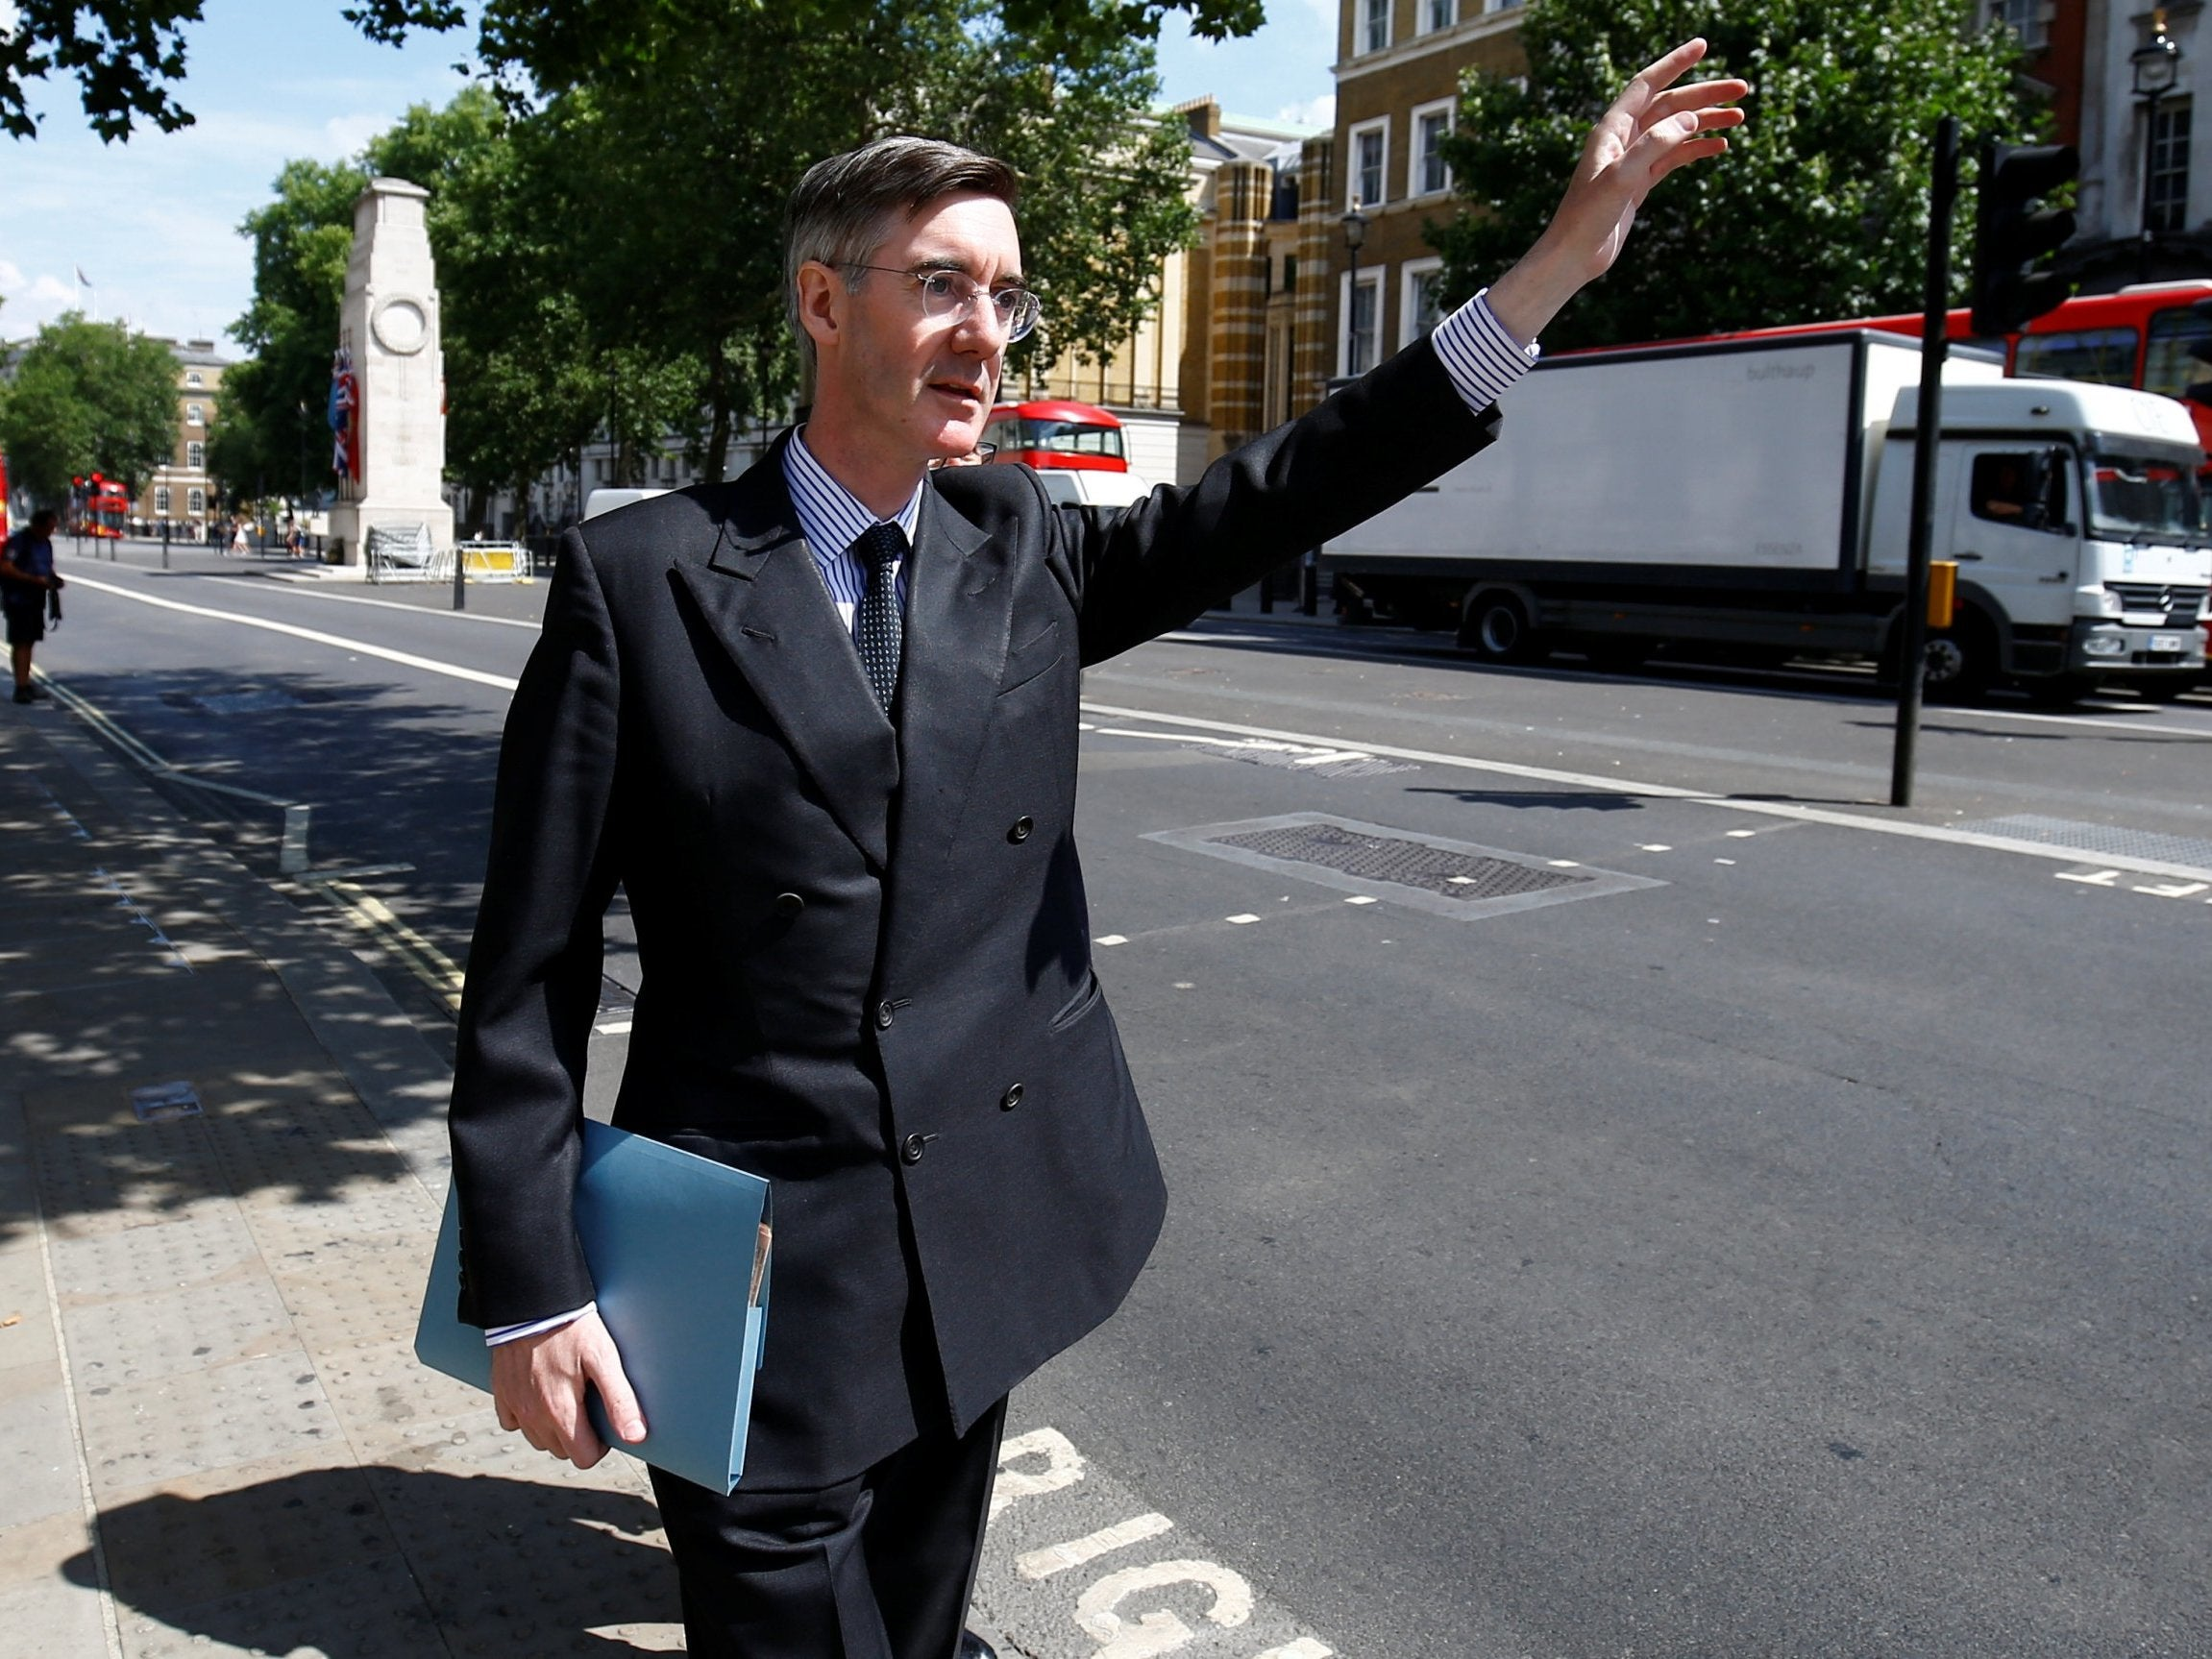 Jacob Rees-Mogg warns Theresa May per chance well fair Brexiteers will block her plans unless they're changed thumbnail